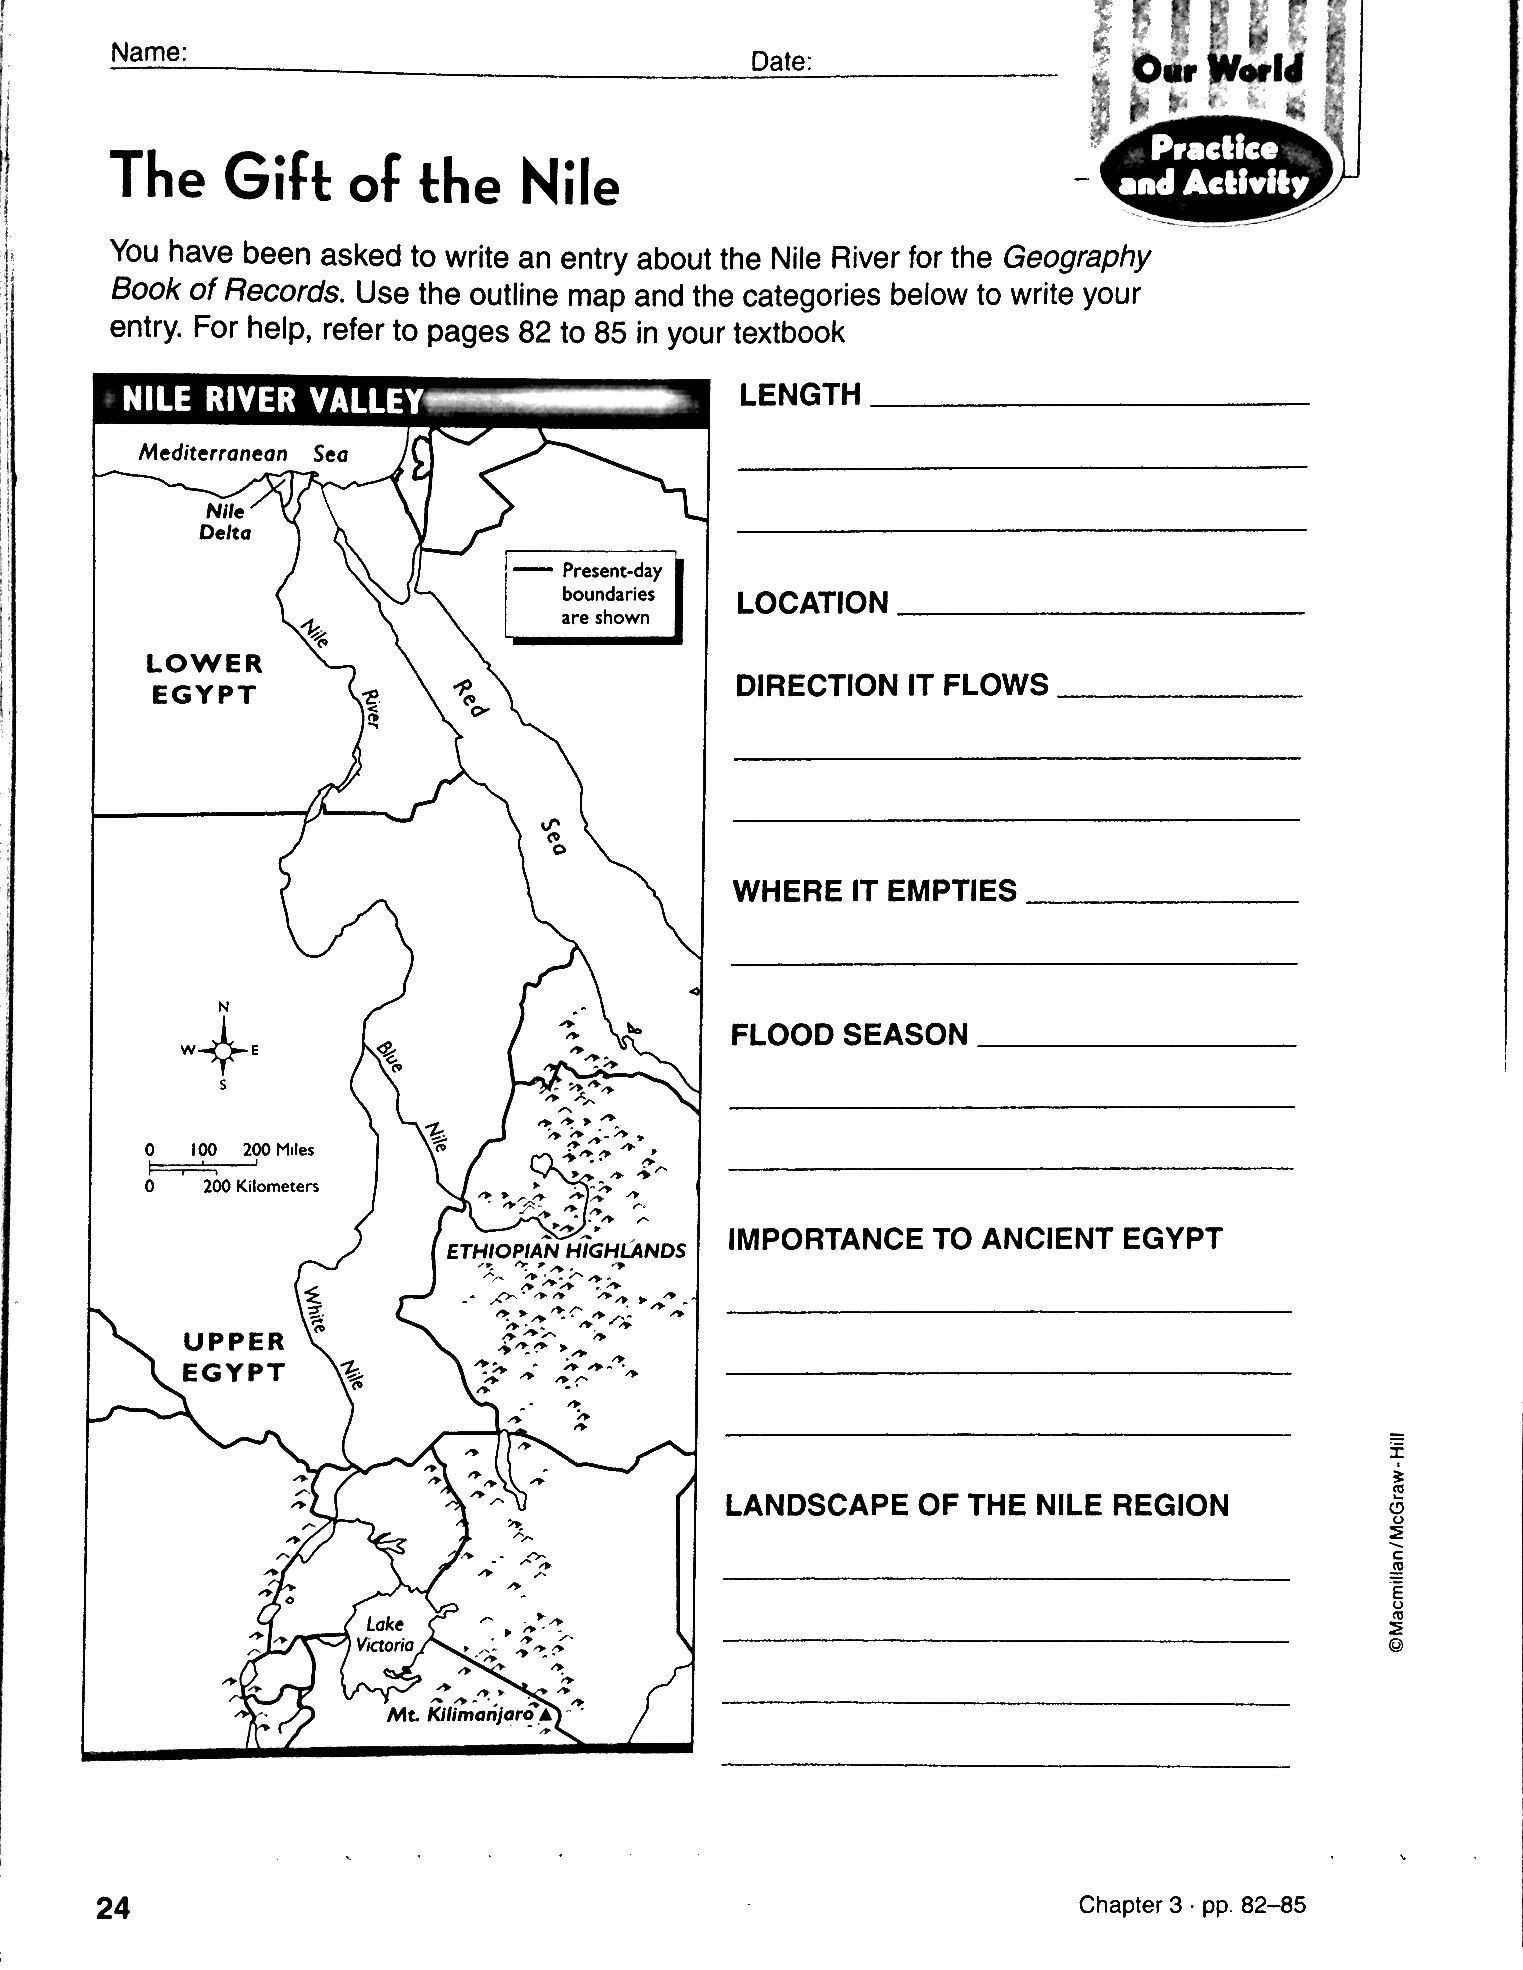 Social Studies Worksheets 6th Grade Chapter 3 Ancient Egypt